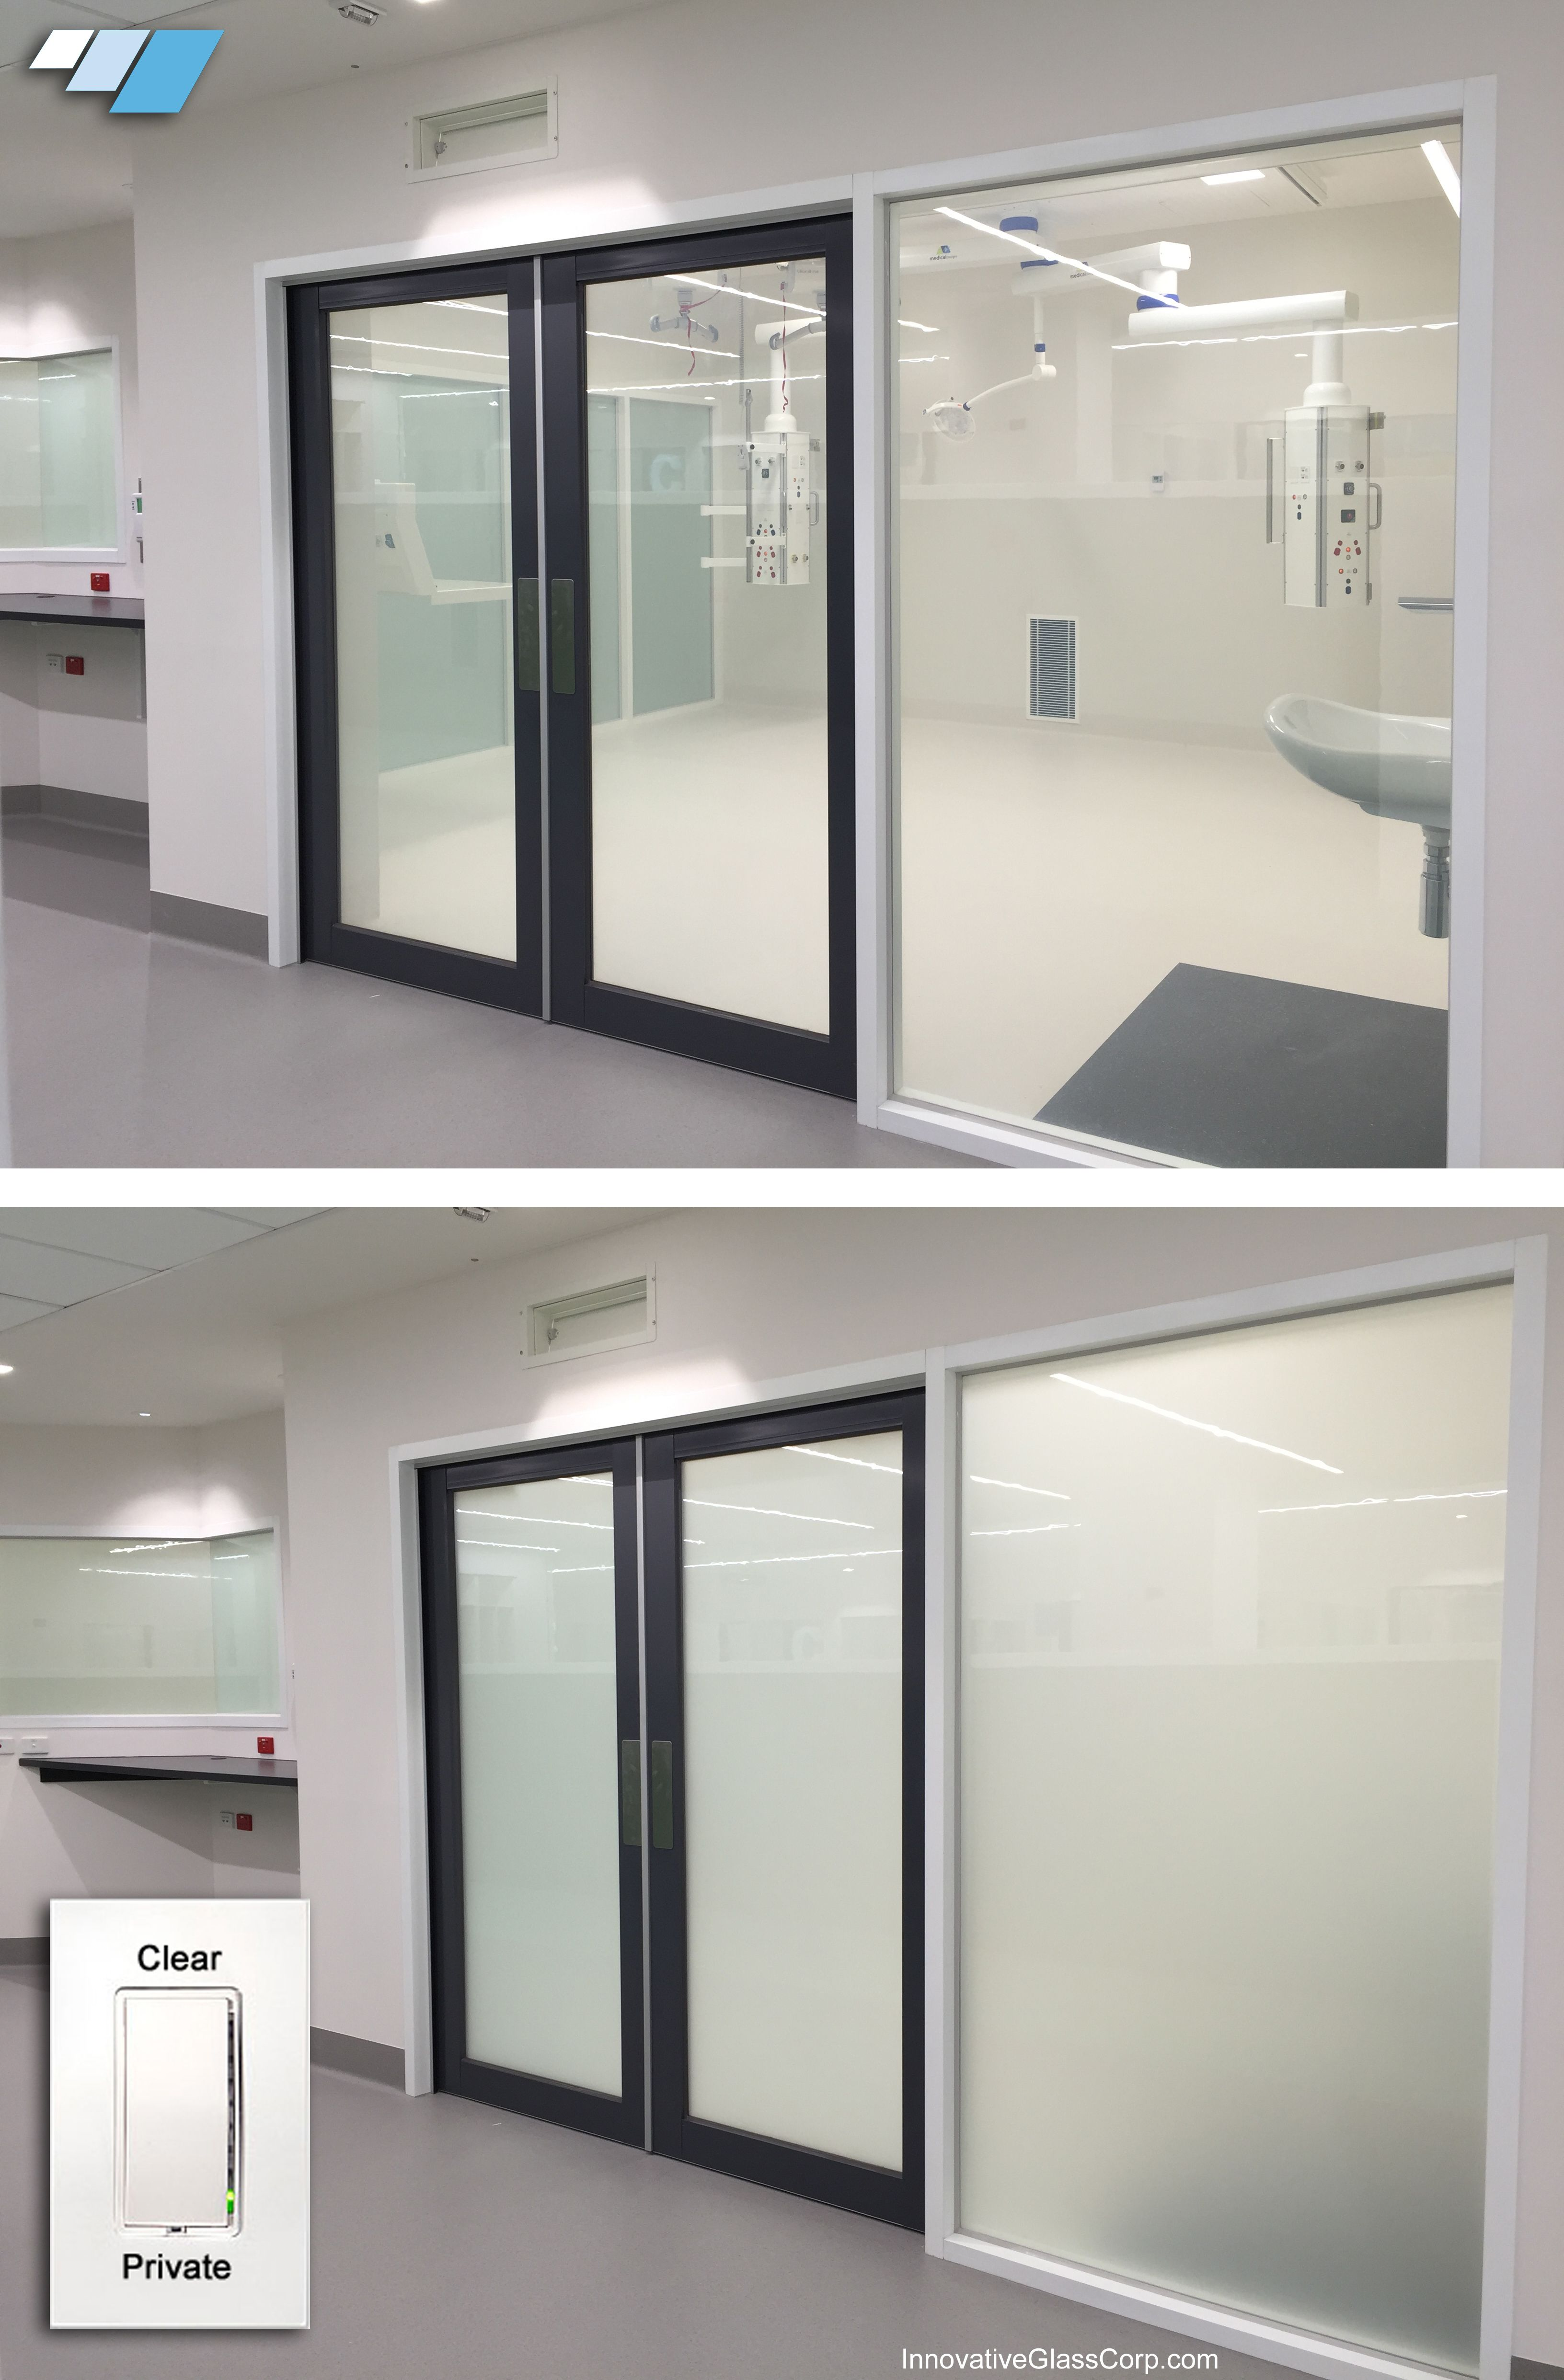 Lc Privacy Glass Is A Smart Glass That Can Be Switched Between Transparent And Frosted States For Patient Priva Smart Glass Home Technology Healthcare Design